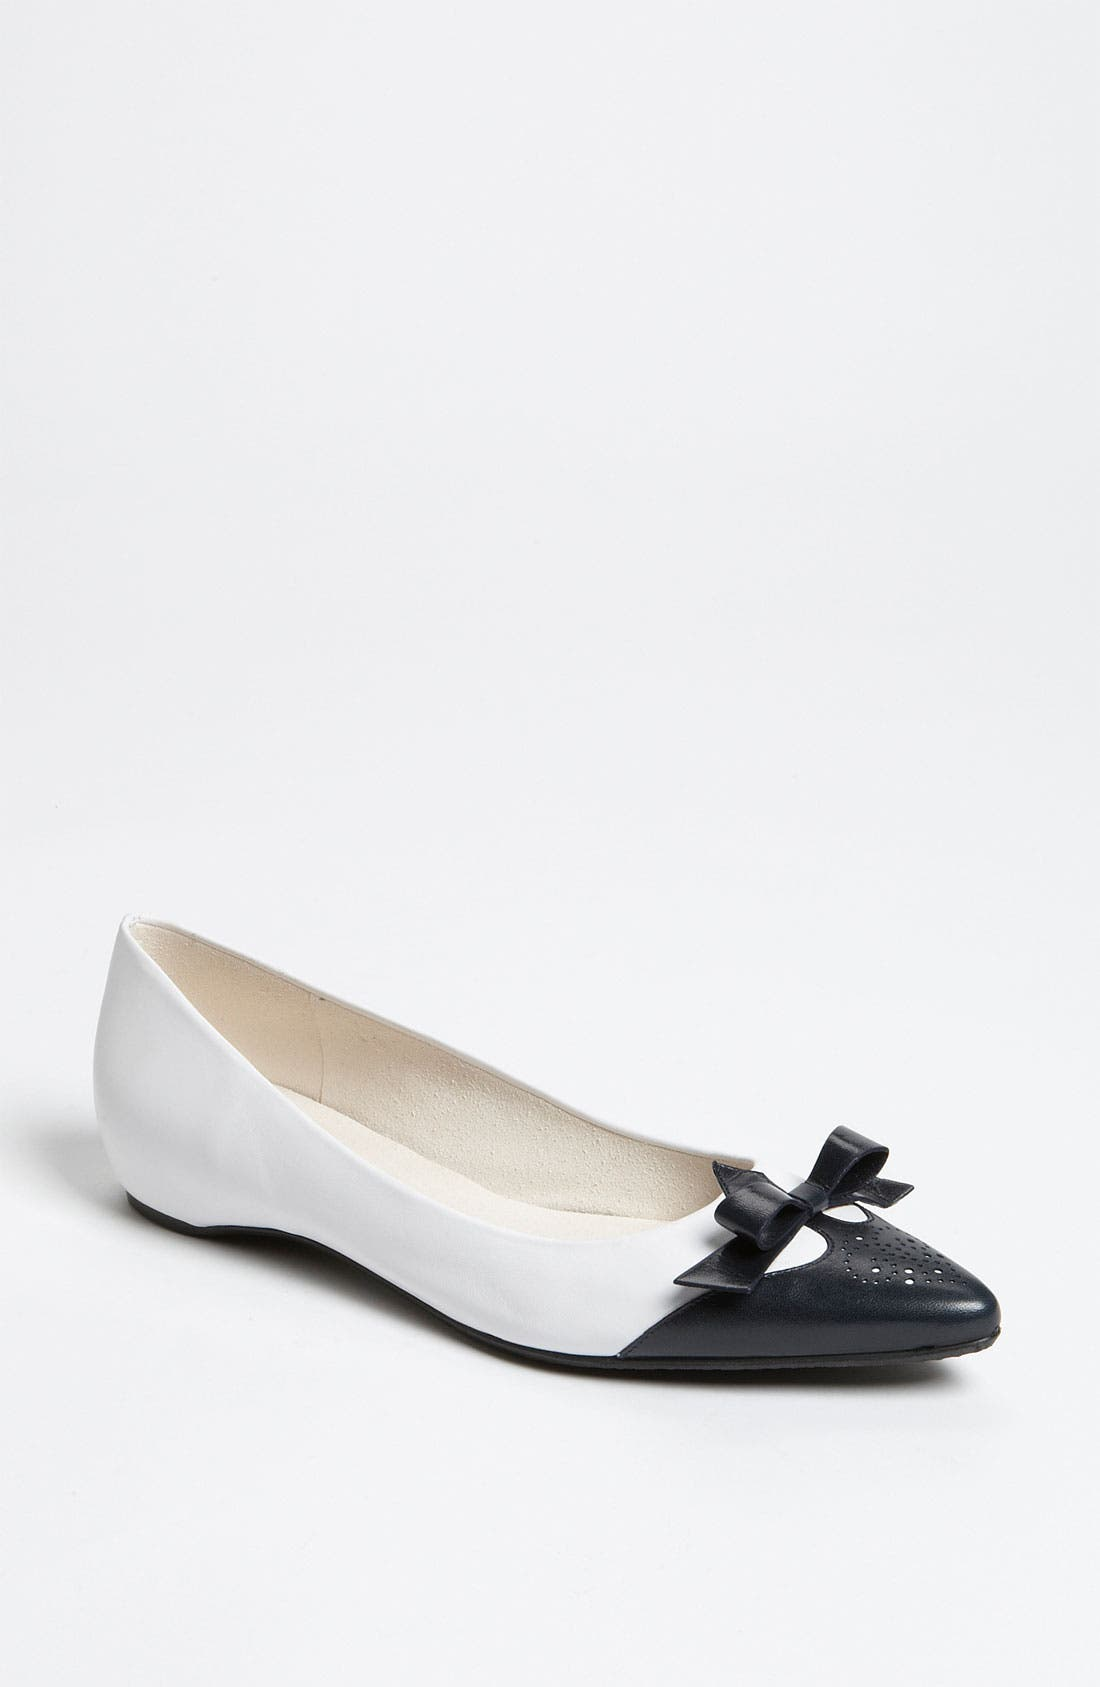 Alternate Image 1 Selected - Stuart Weitzman 'Whiskerlo' Flat